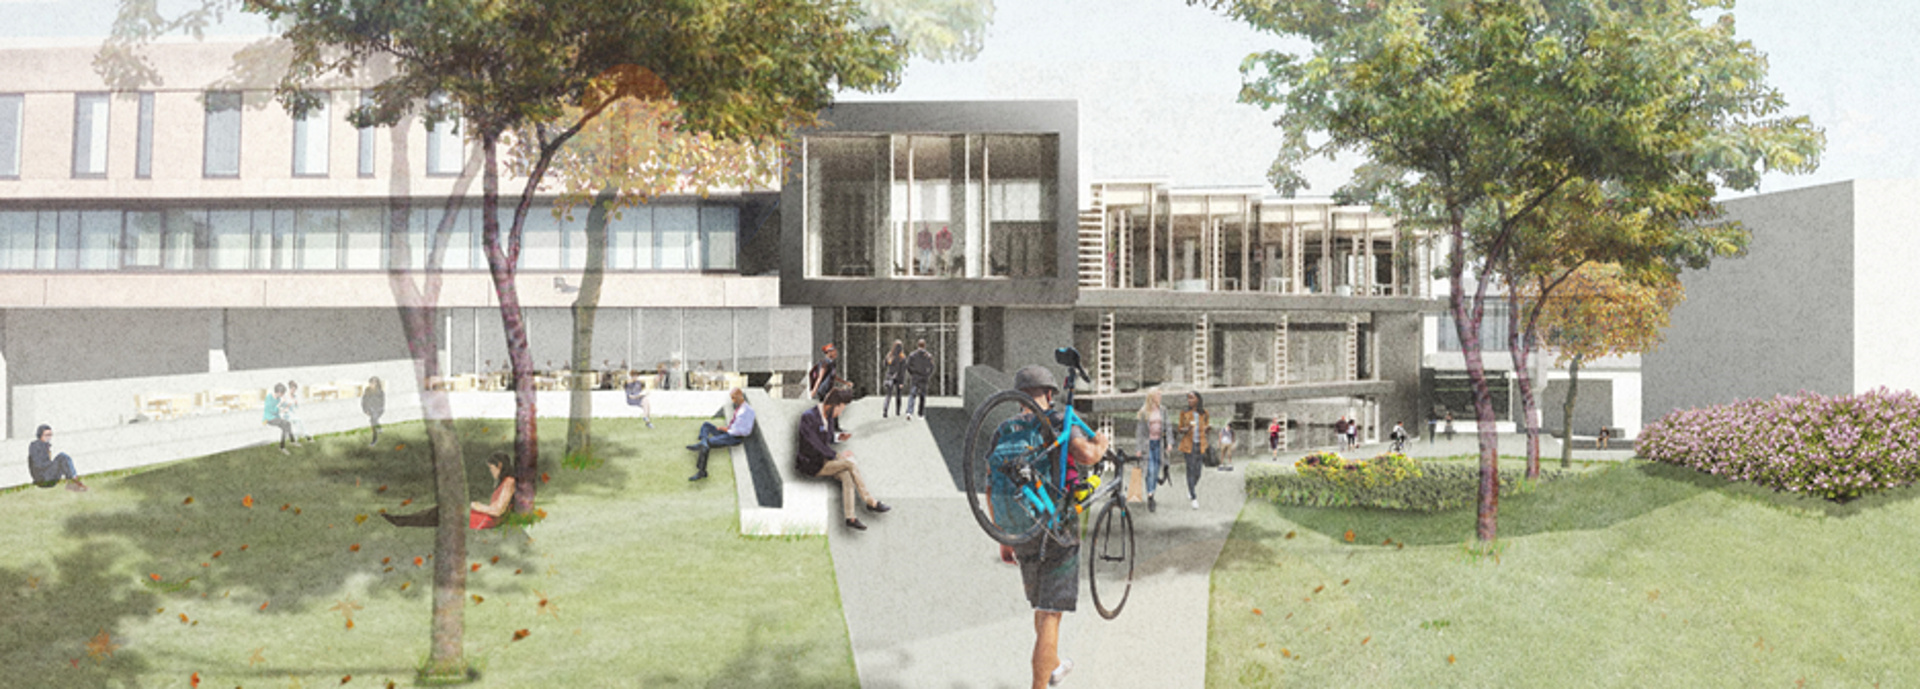 Artist's impression of exterior of Campus Central redevelopment